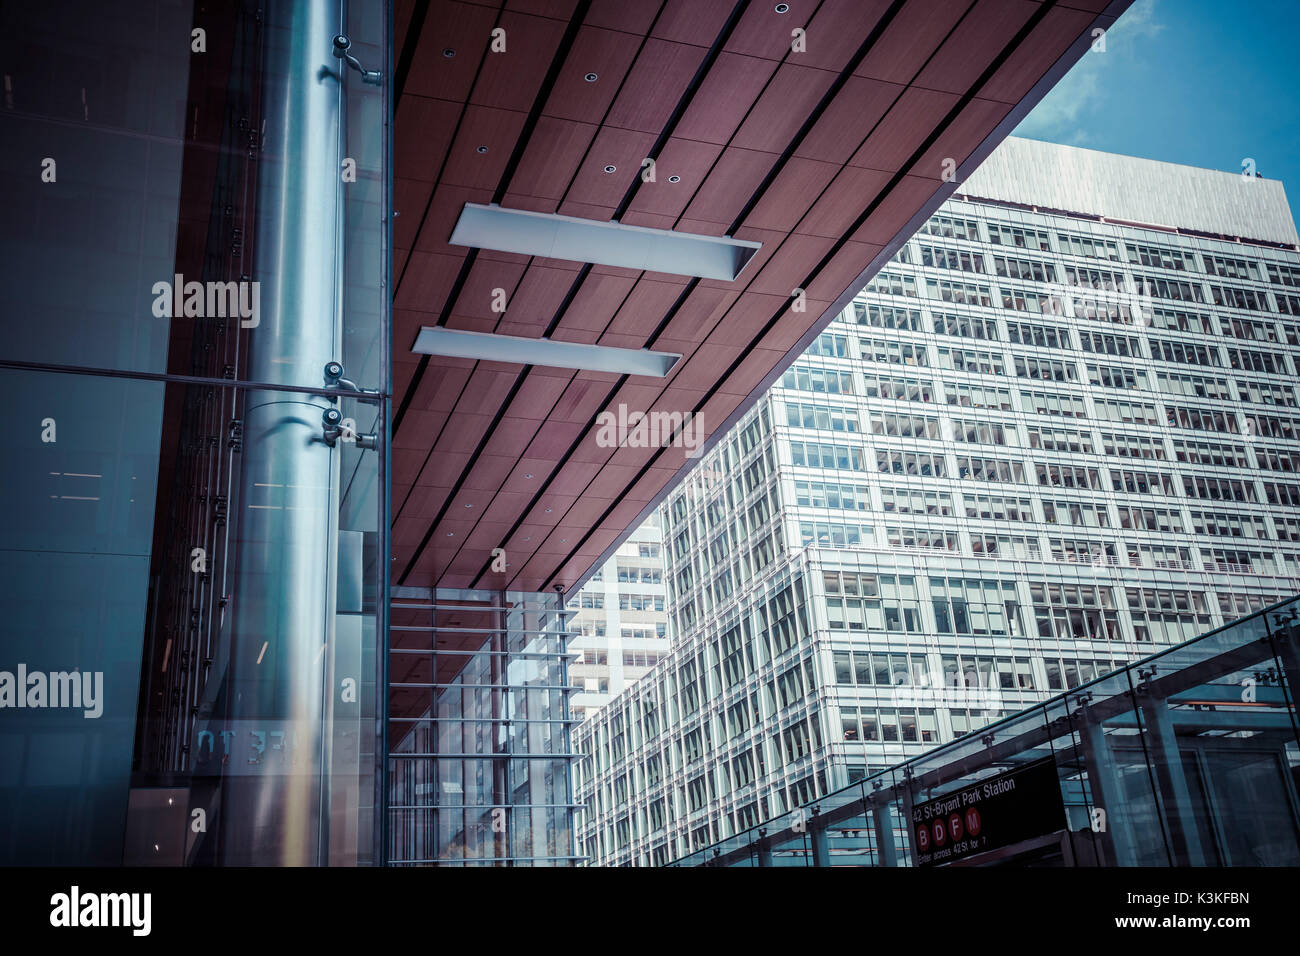 Architectur and skyscrapers, Bryant Park Station, Streetview, Manhatten, New York, USA Stock Photo